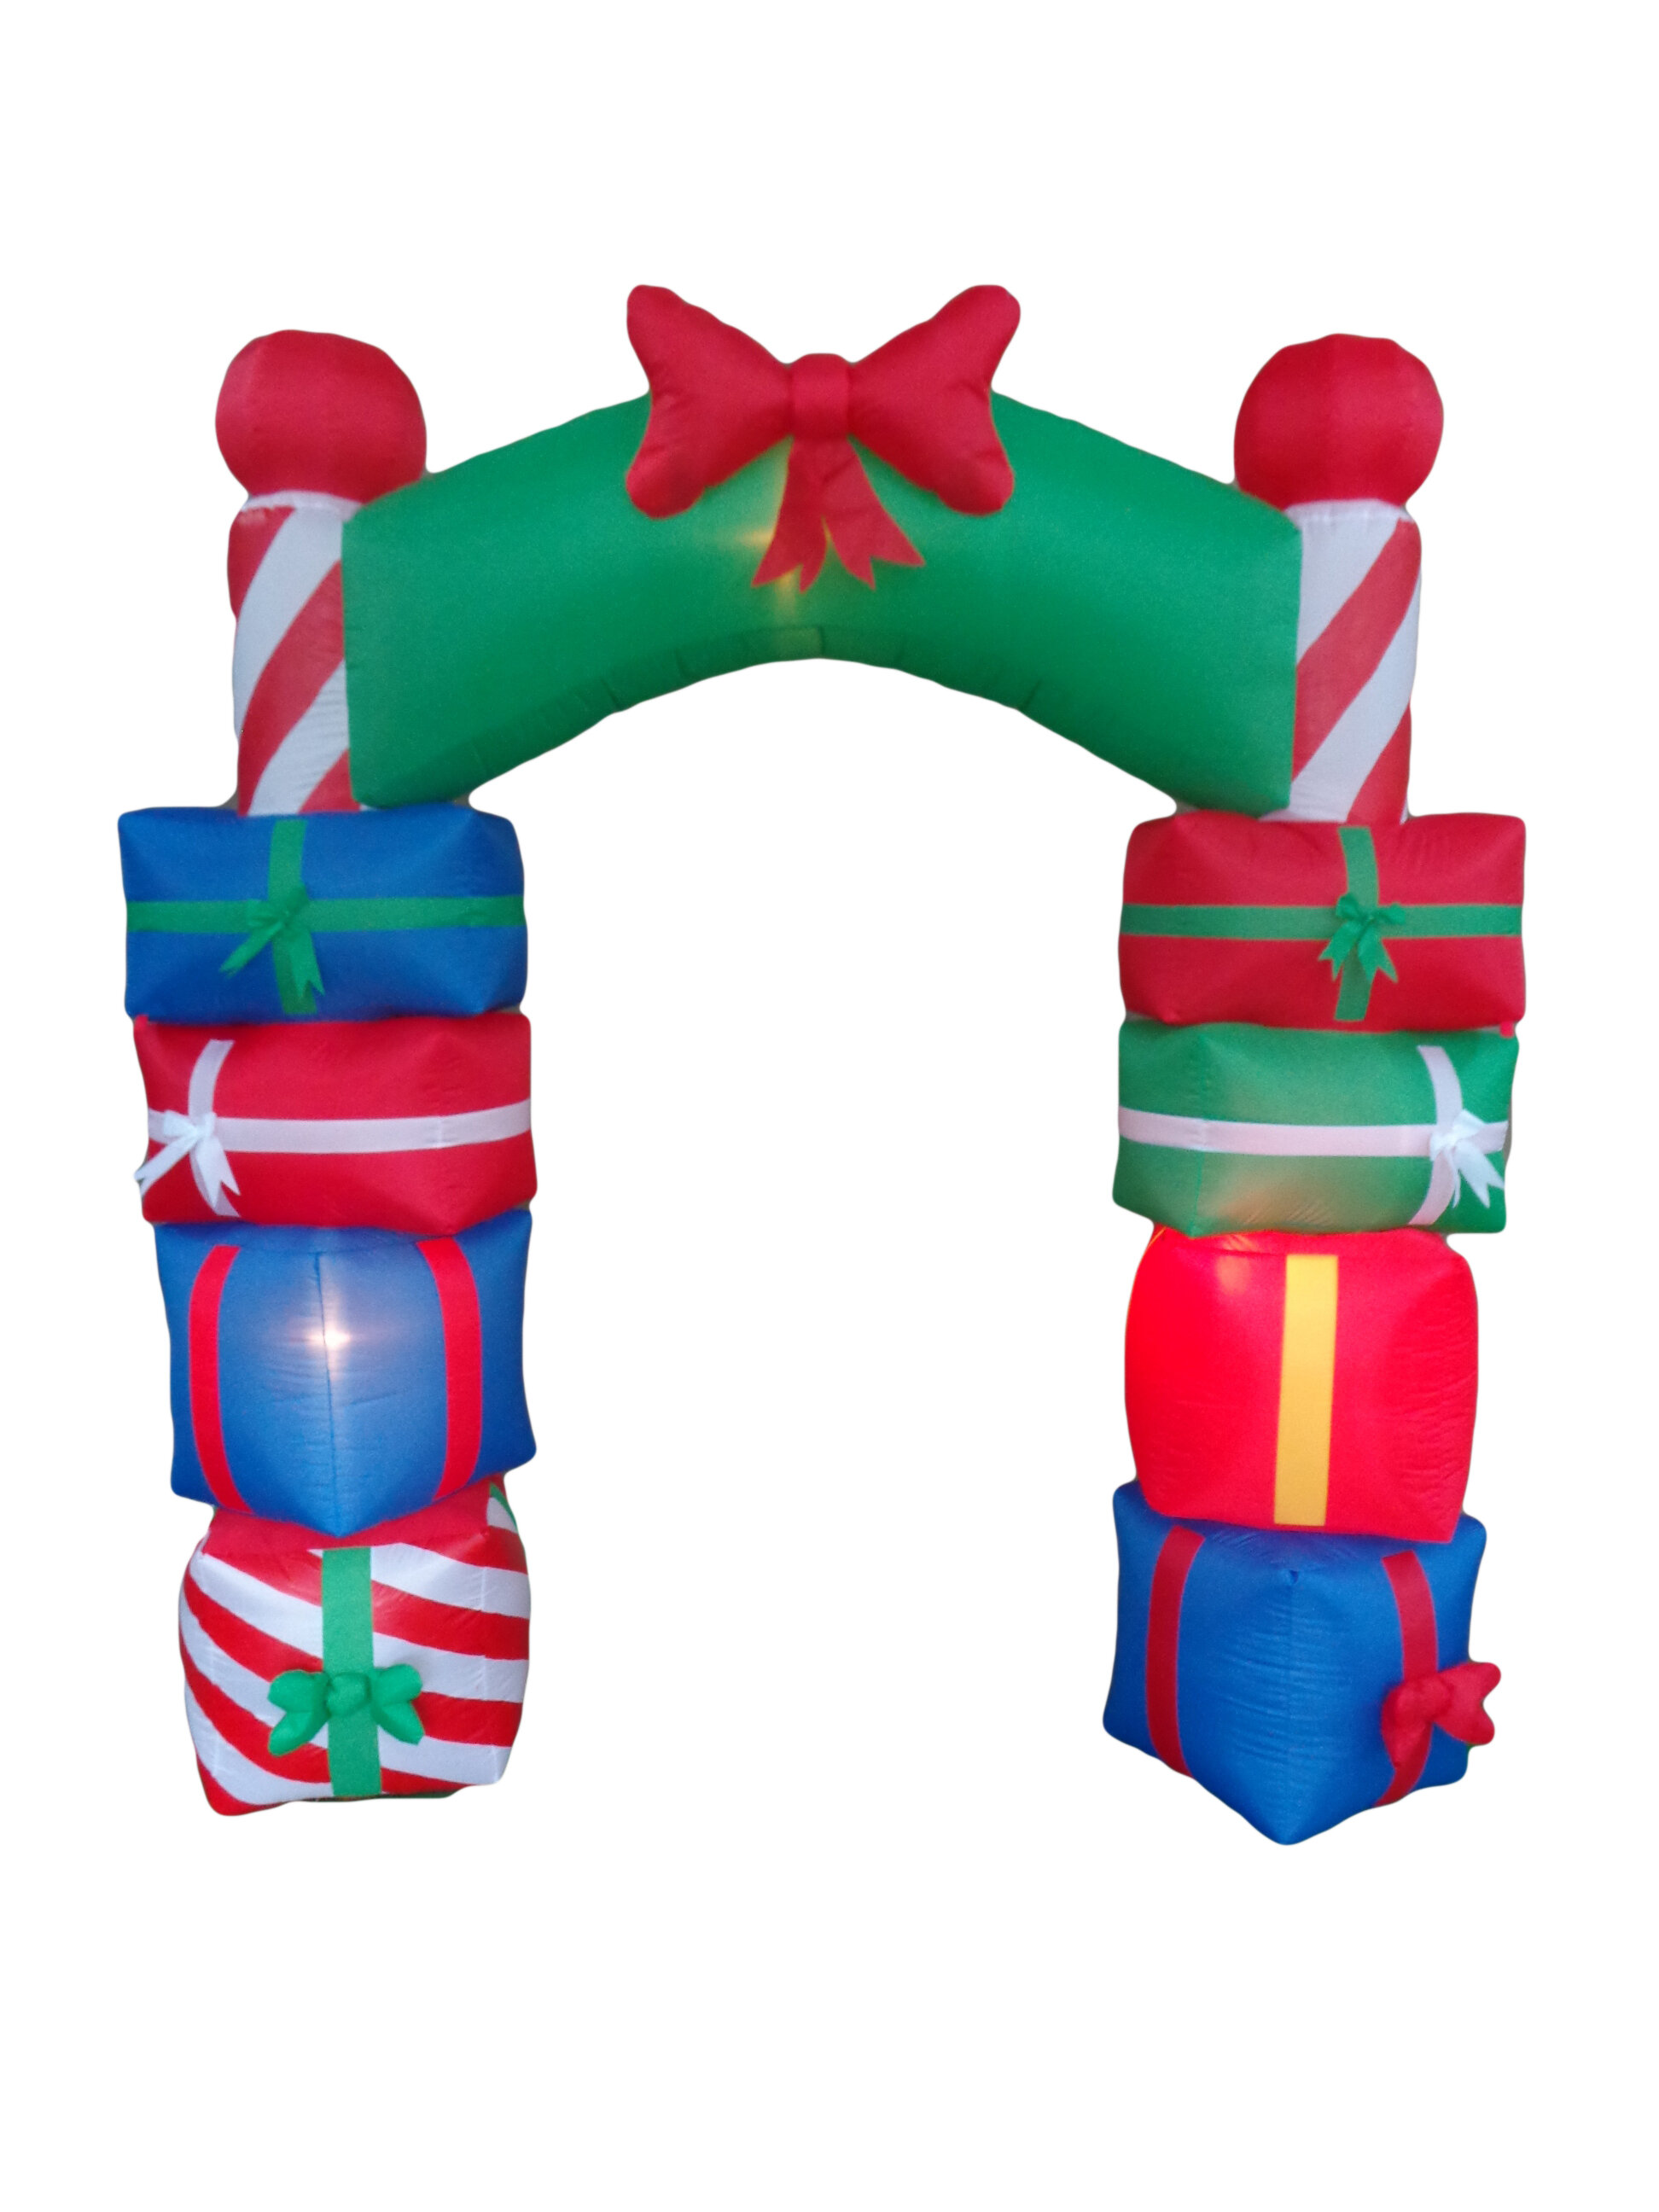 The Holiday Aisle Christmas Inflatable Gift Boxes Arch with Bow Tie ...